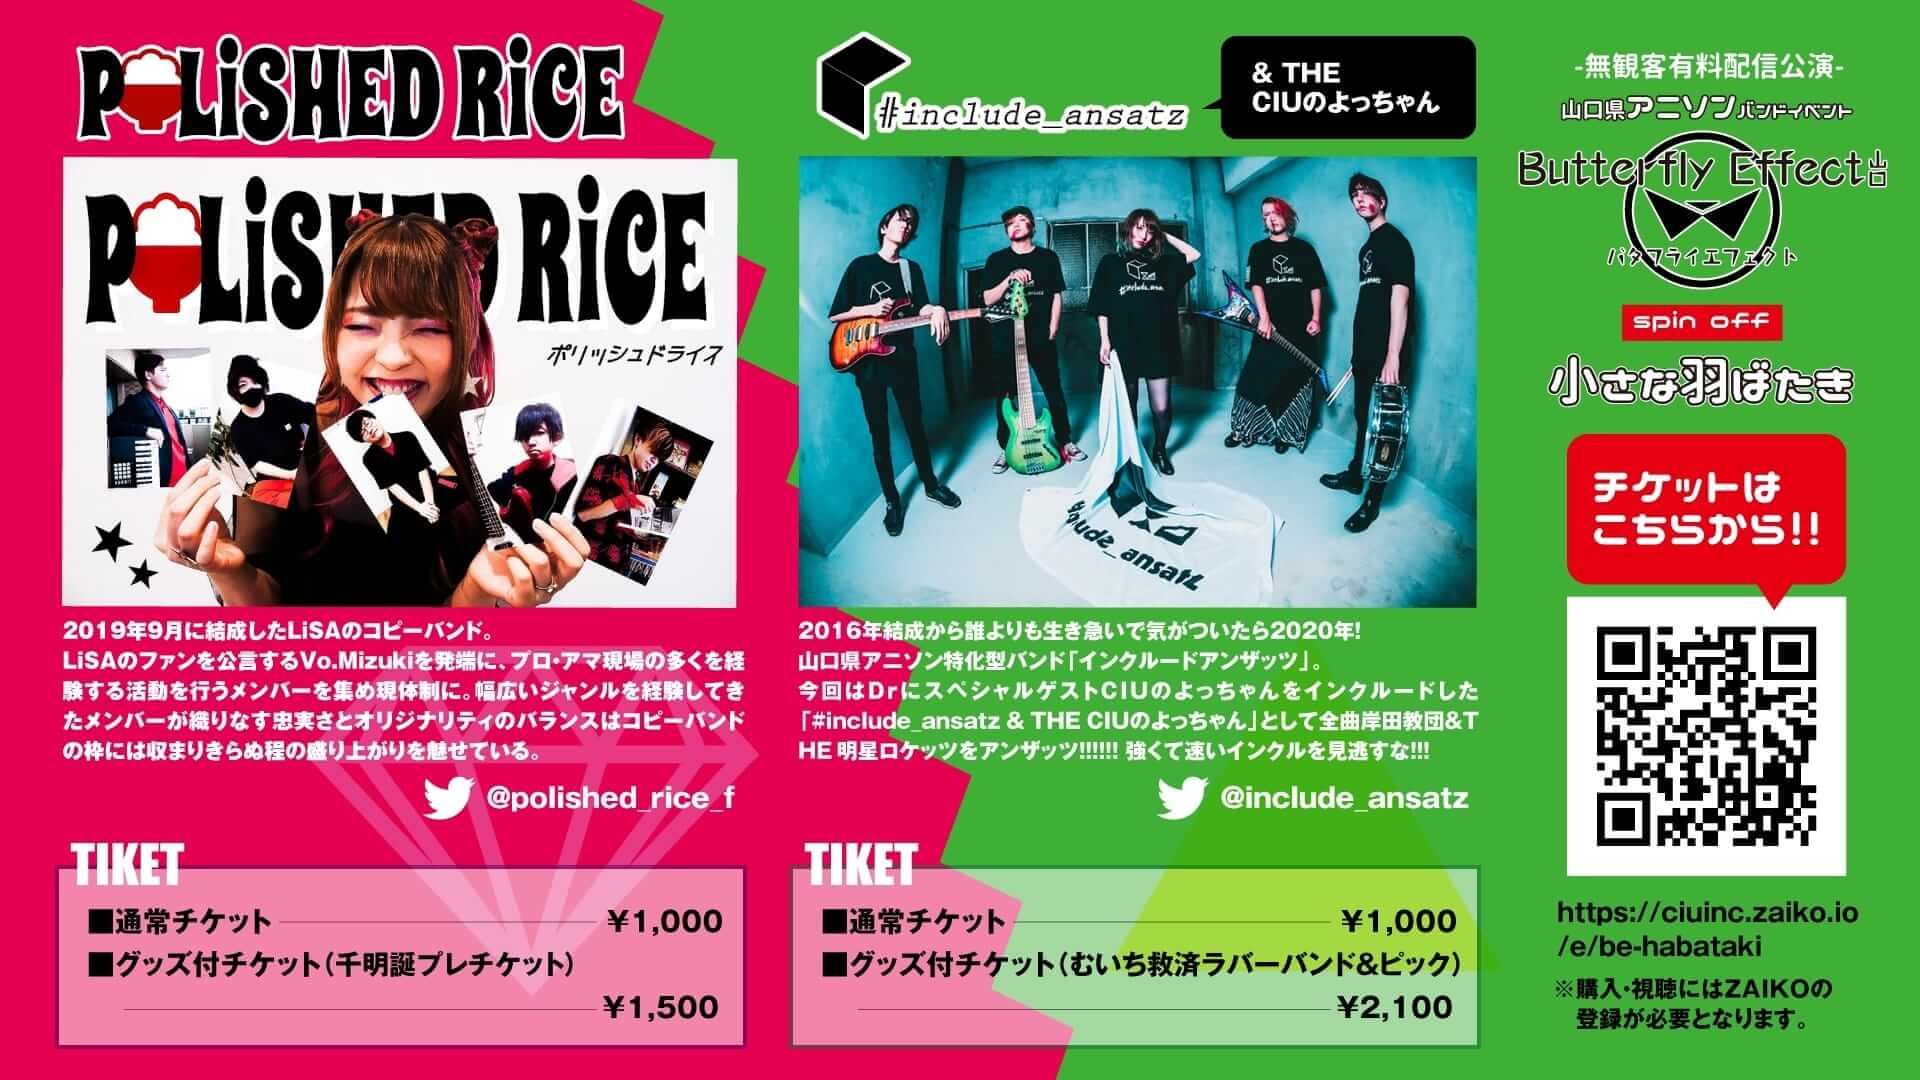 Butterfly Effect 山口 Vol.5.5 -無観客有料配信公演-フライヤー うら